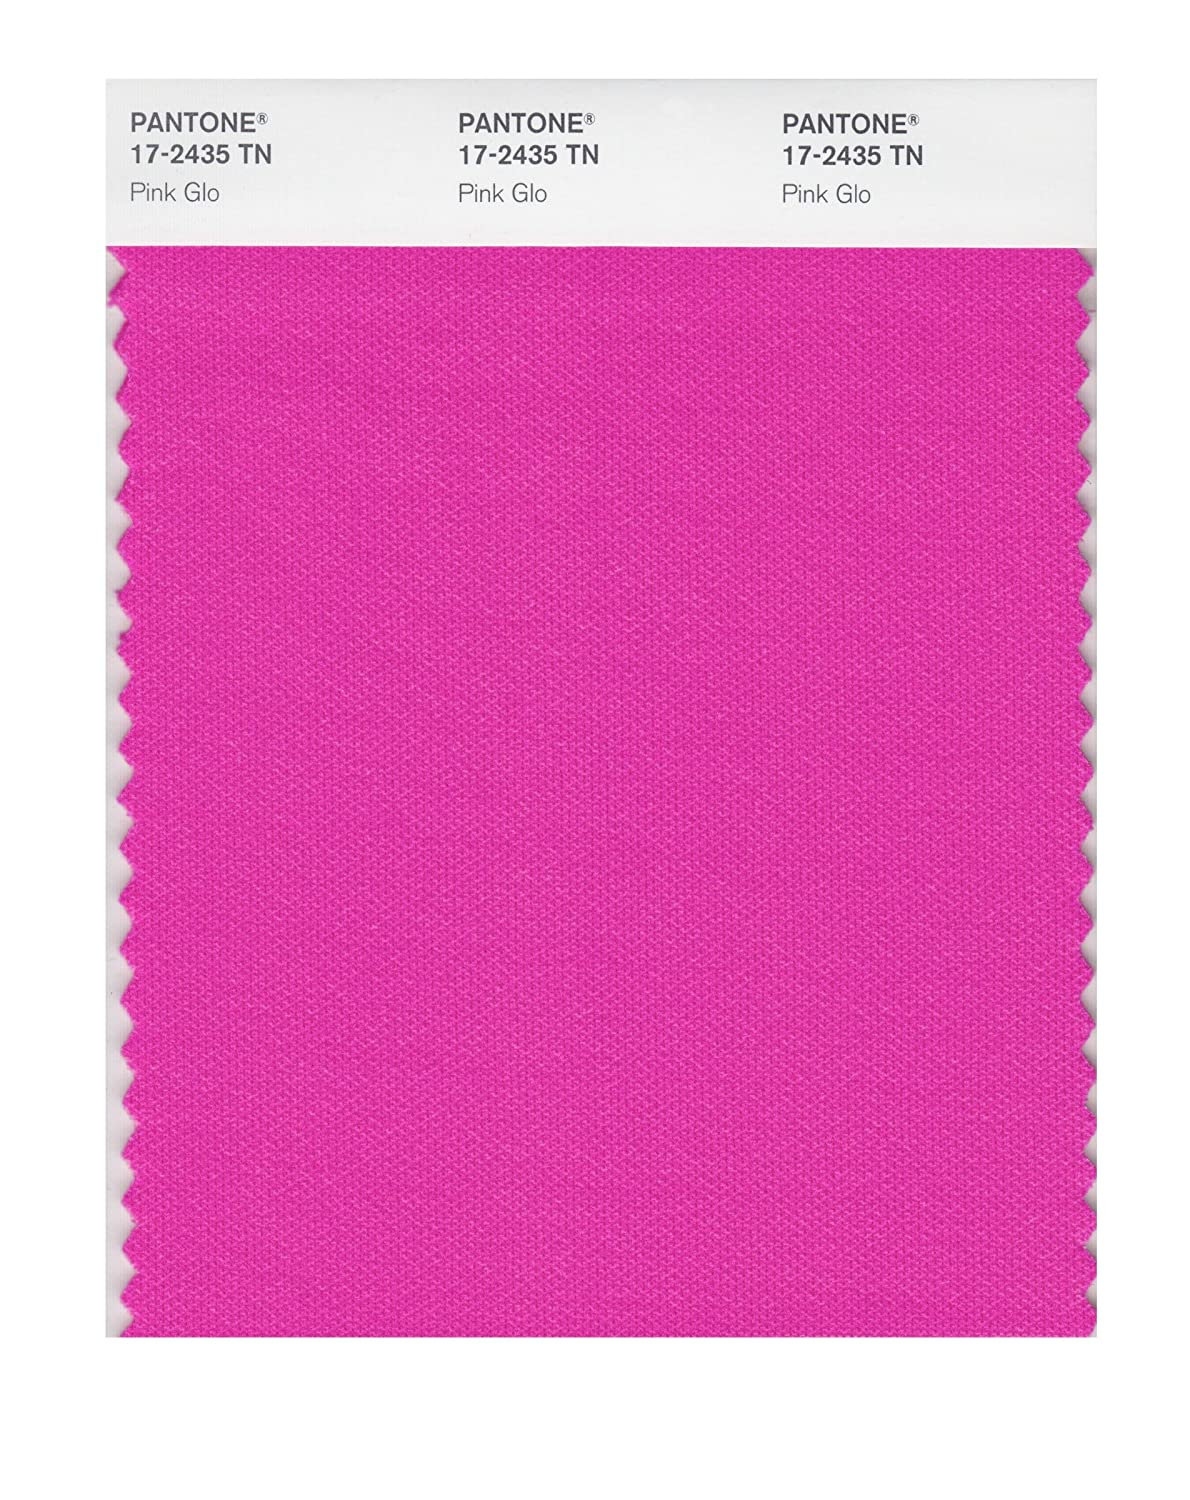 Pantone 17-2435 Nylon Brights Color Swatch Card - House Paint - Amazon.com